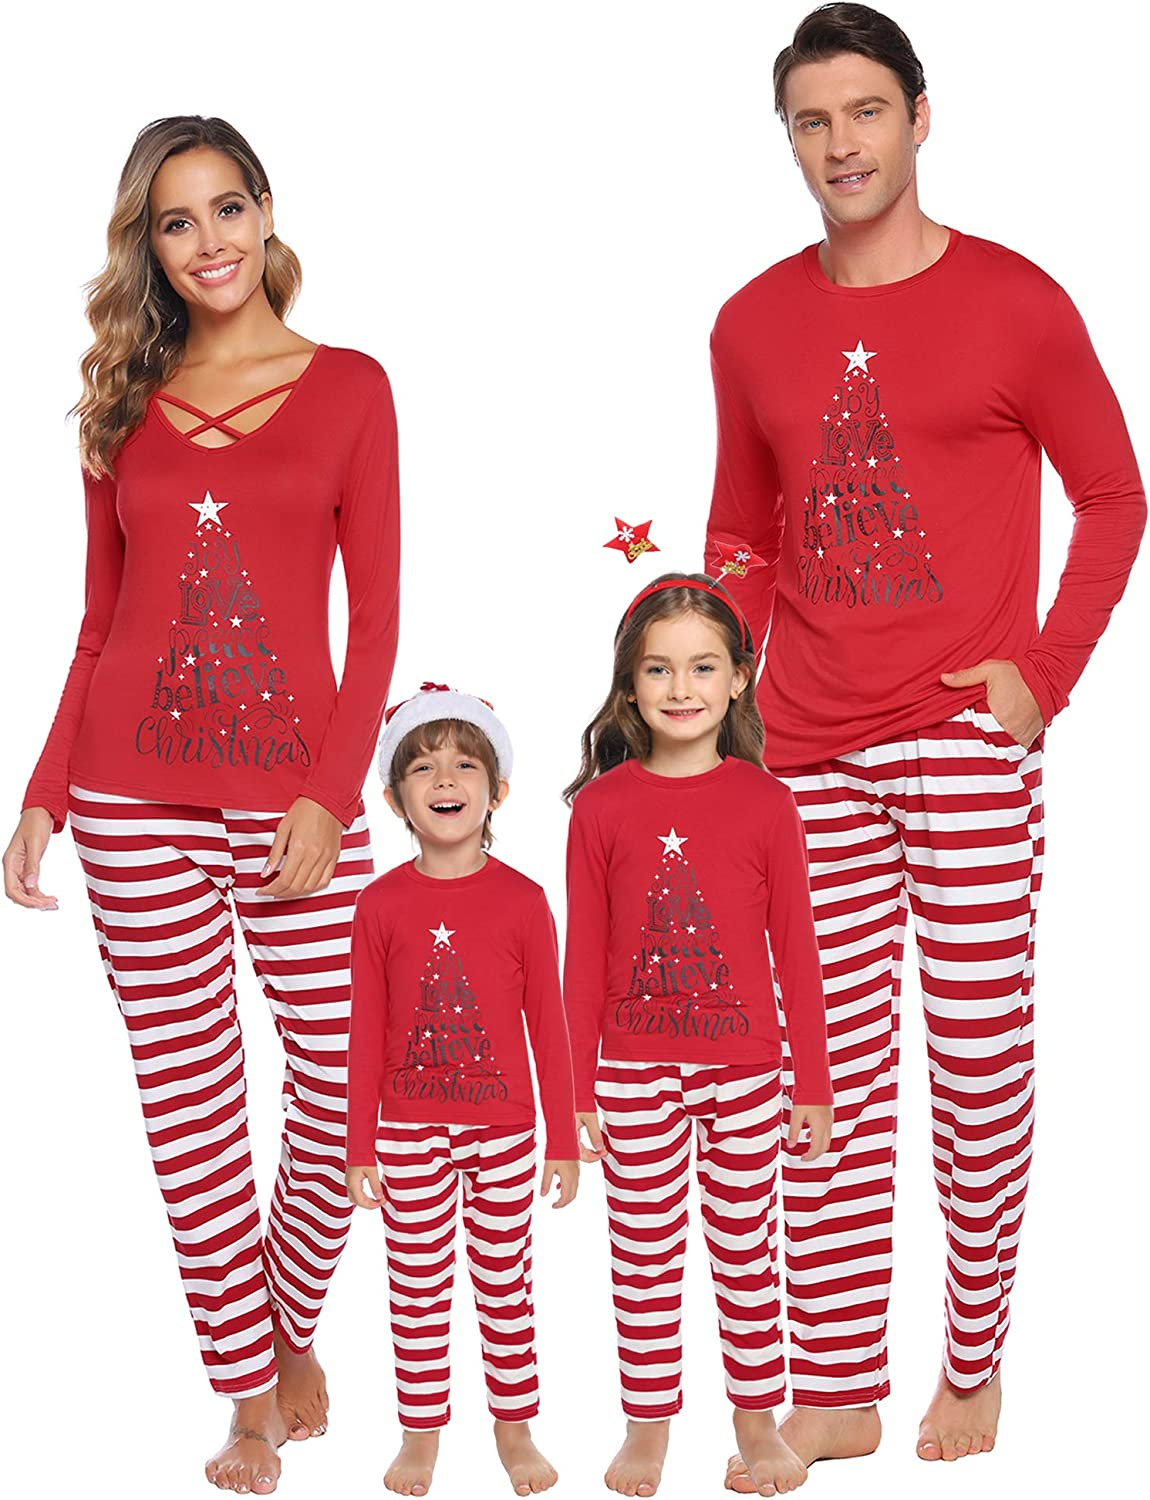 Joy Love Peace Believe Christmas 1 Knitted Sweaters Pullover for Teens Girl